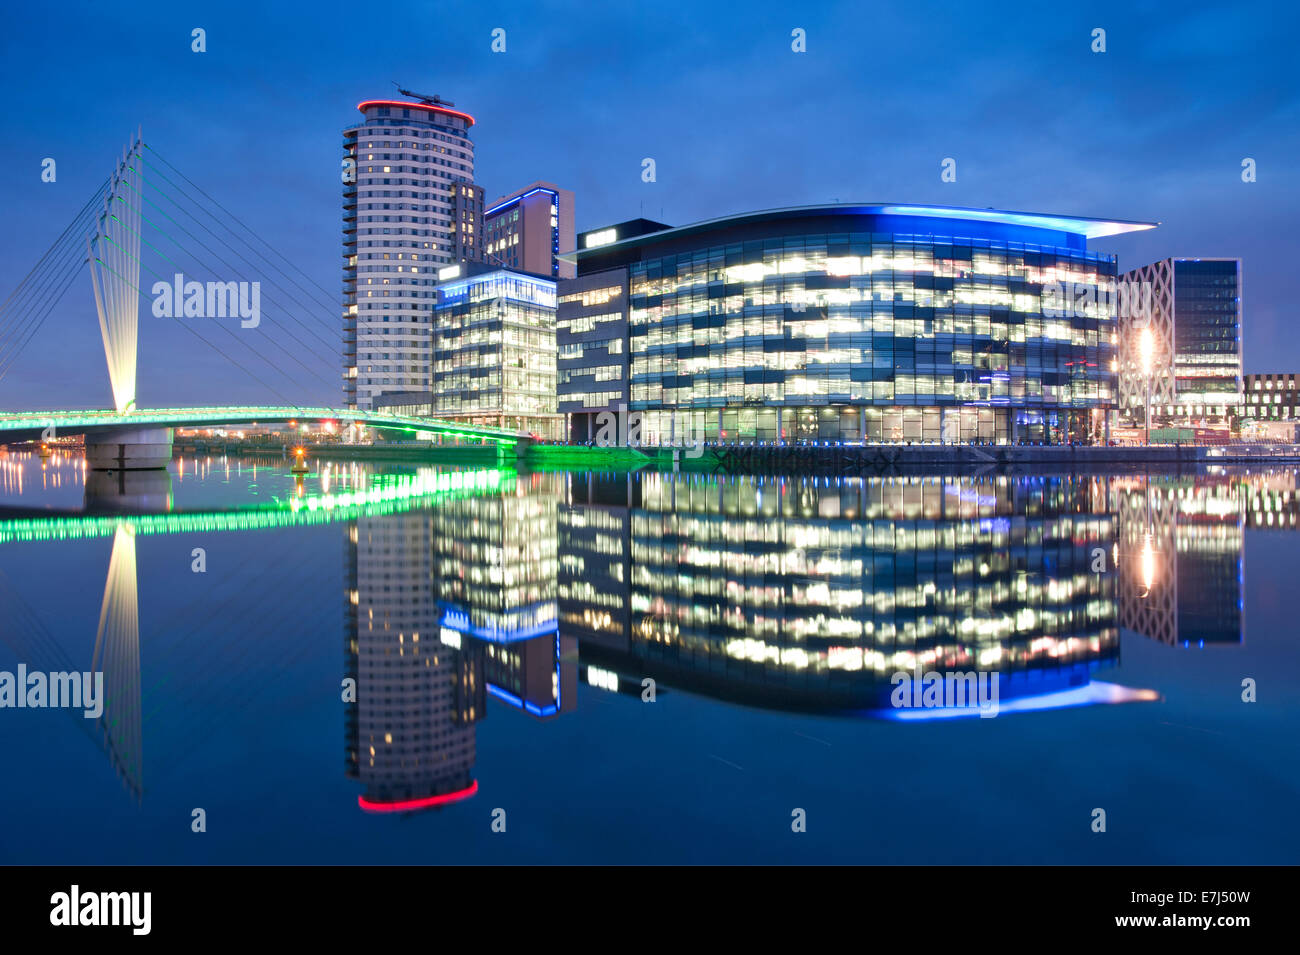 MediaCityUK and the BBC Studios at Night, Salford Quays, Greater Manchester, England, UK - Stock Image